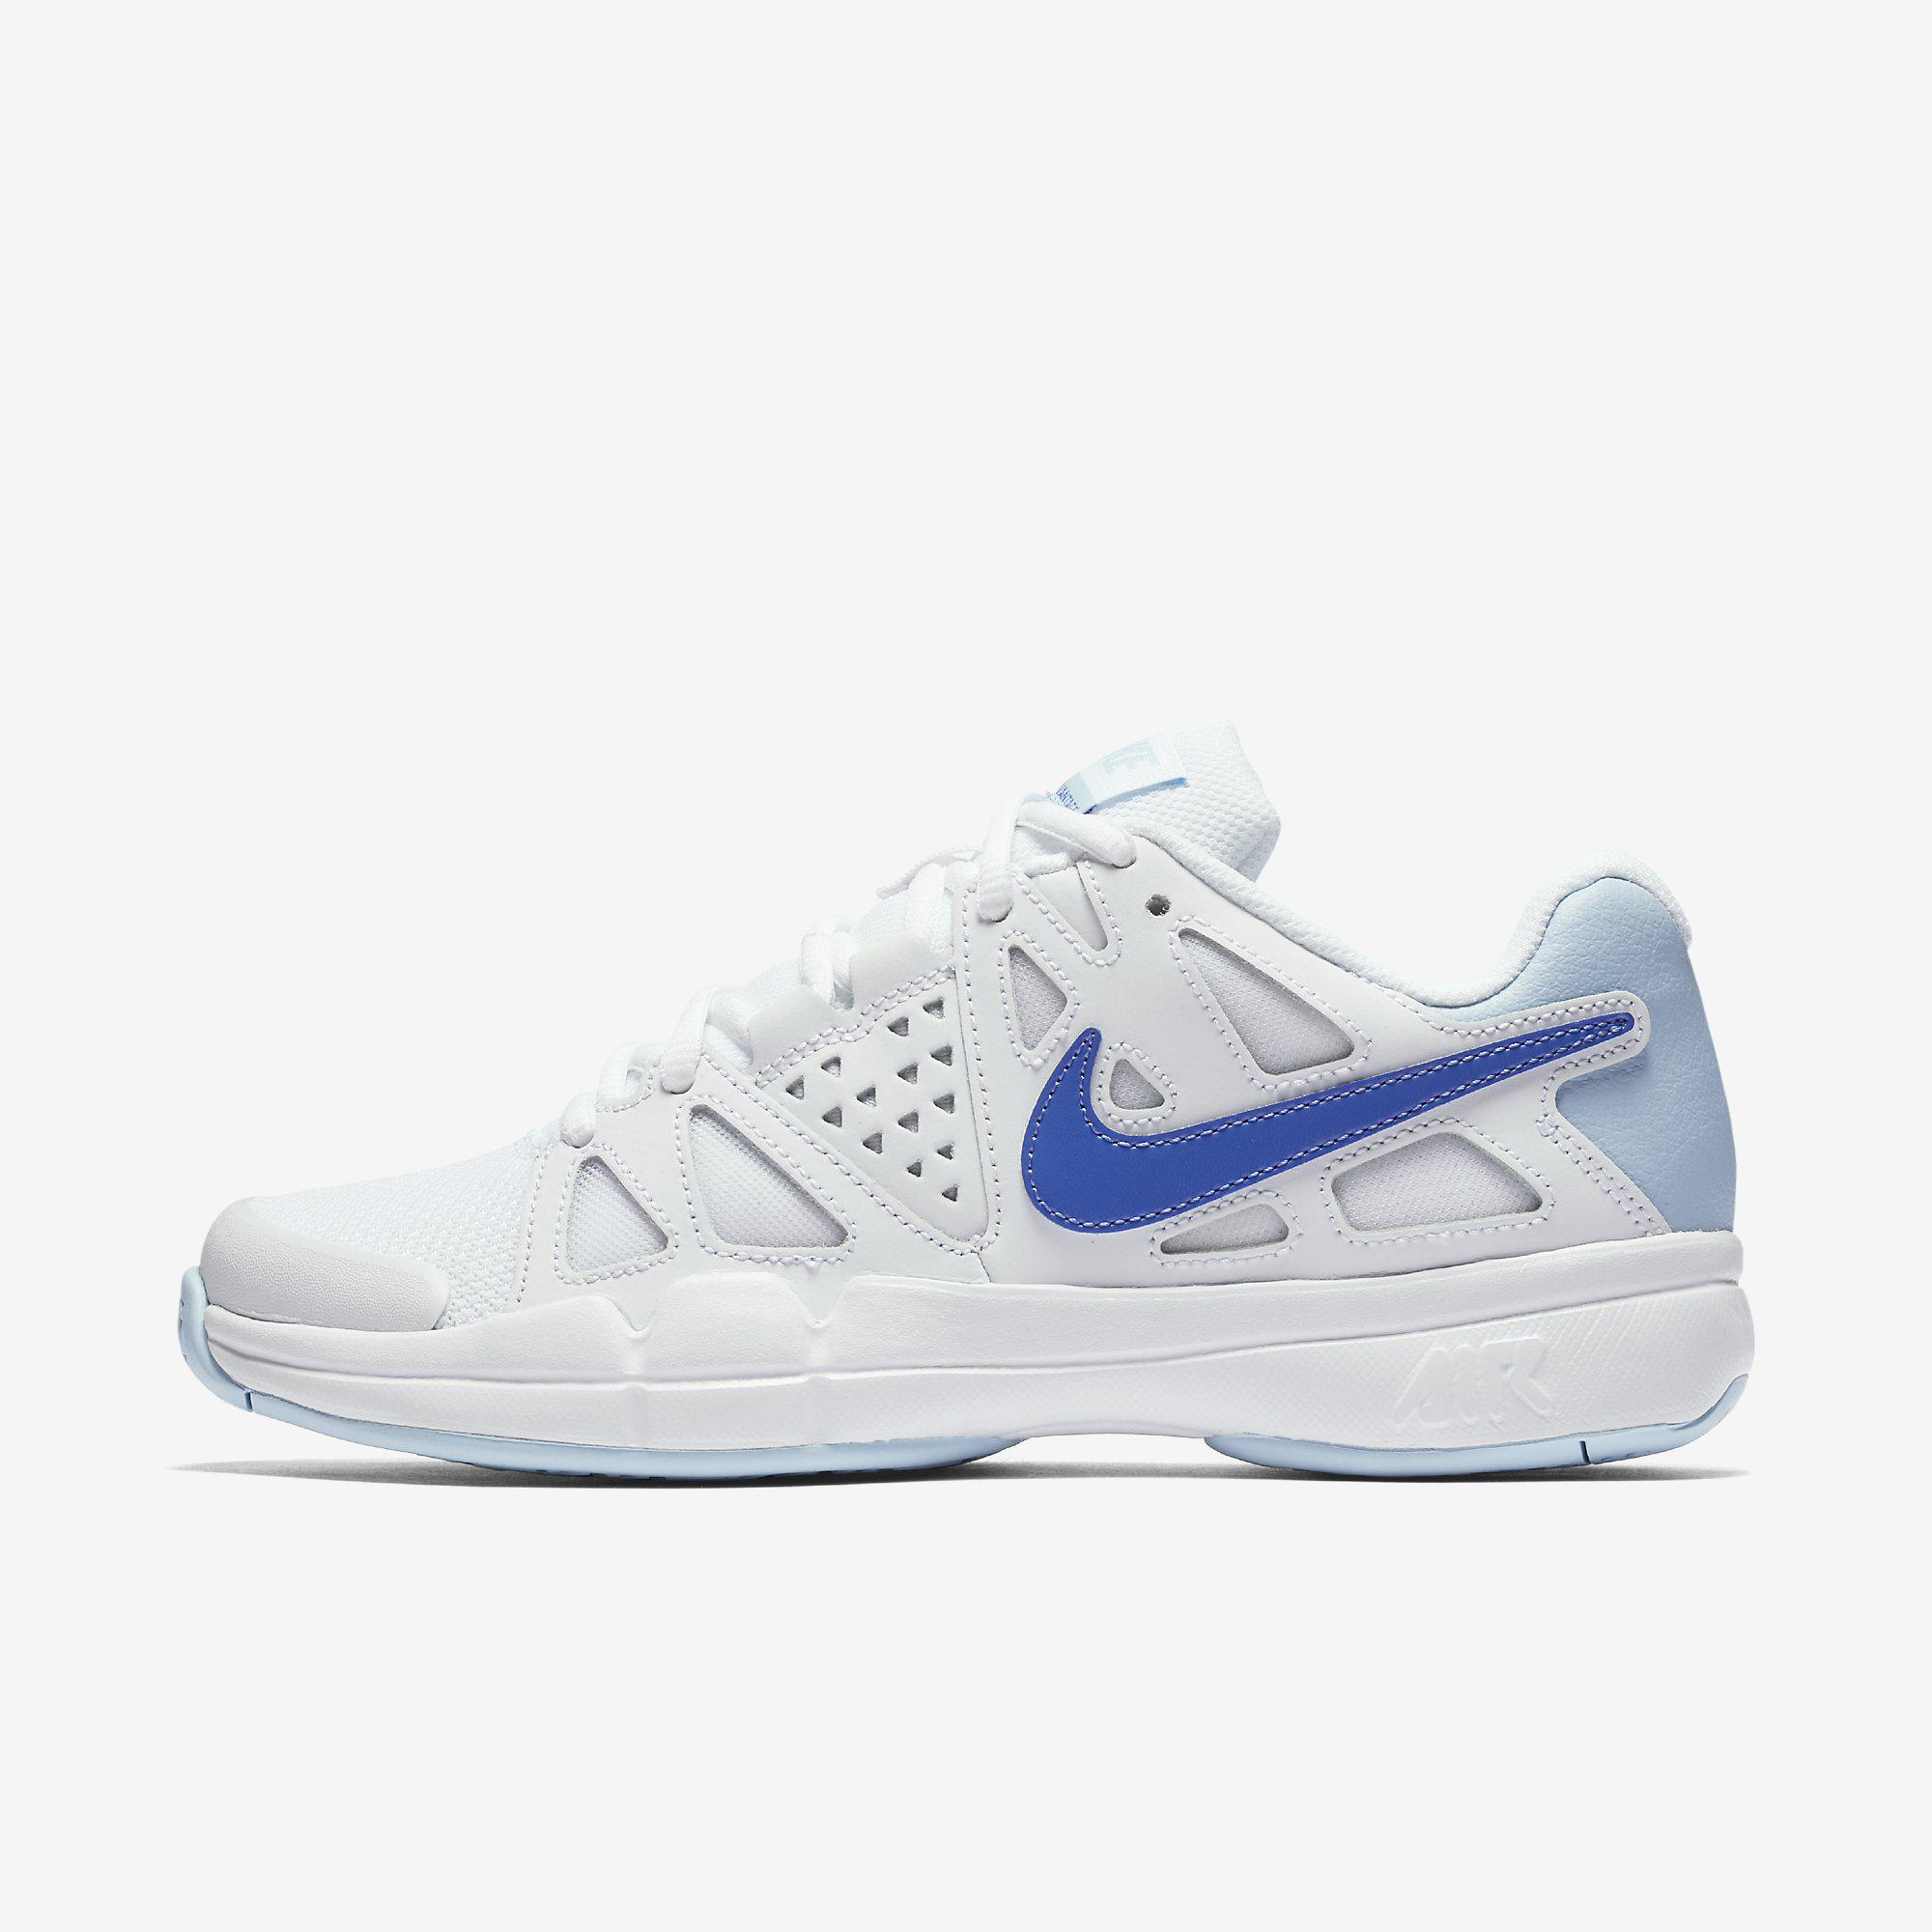 Discontinued Nike Womens Golf Shoes